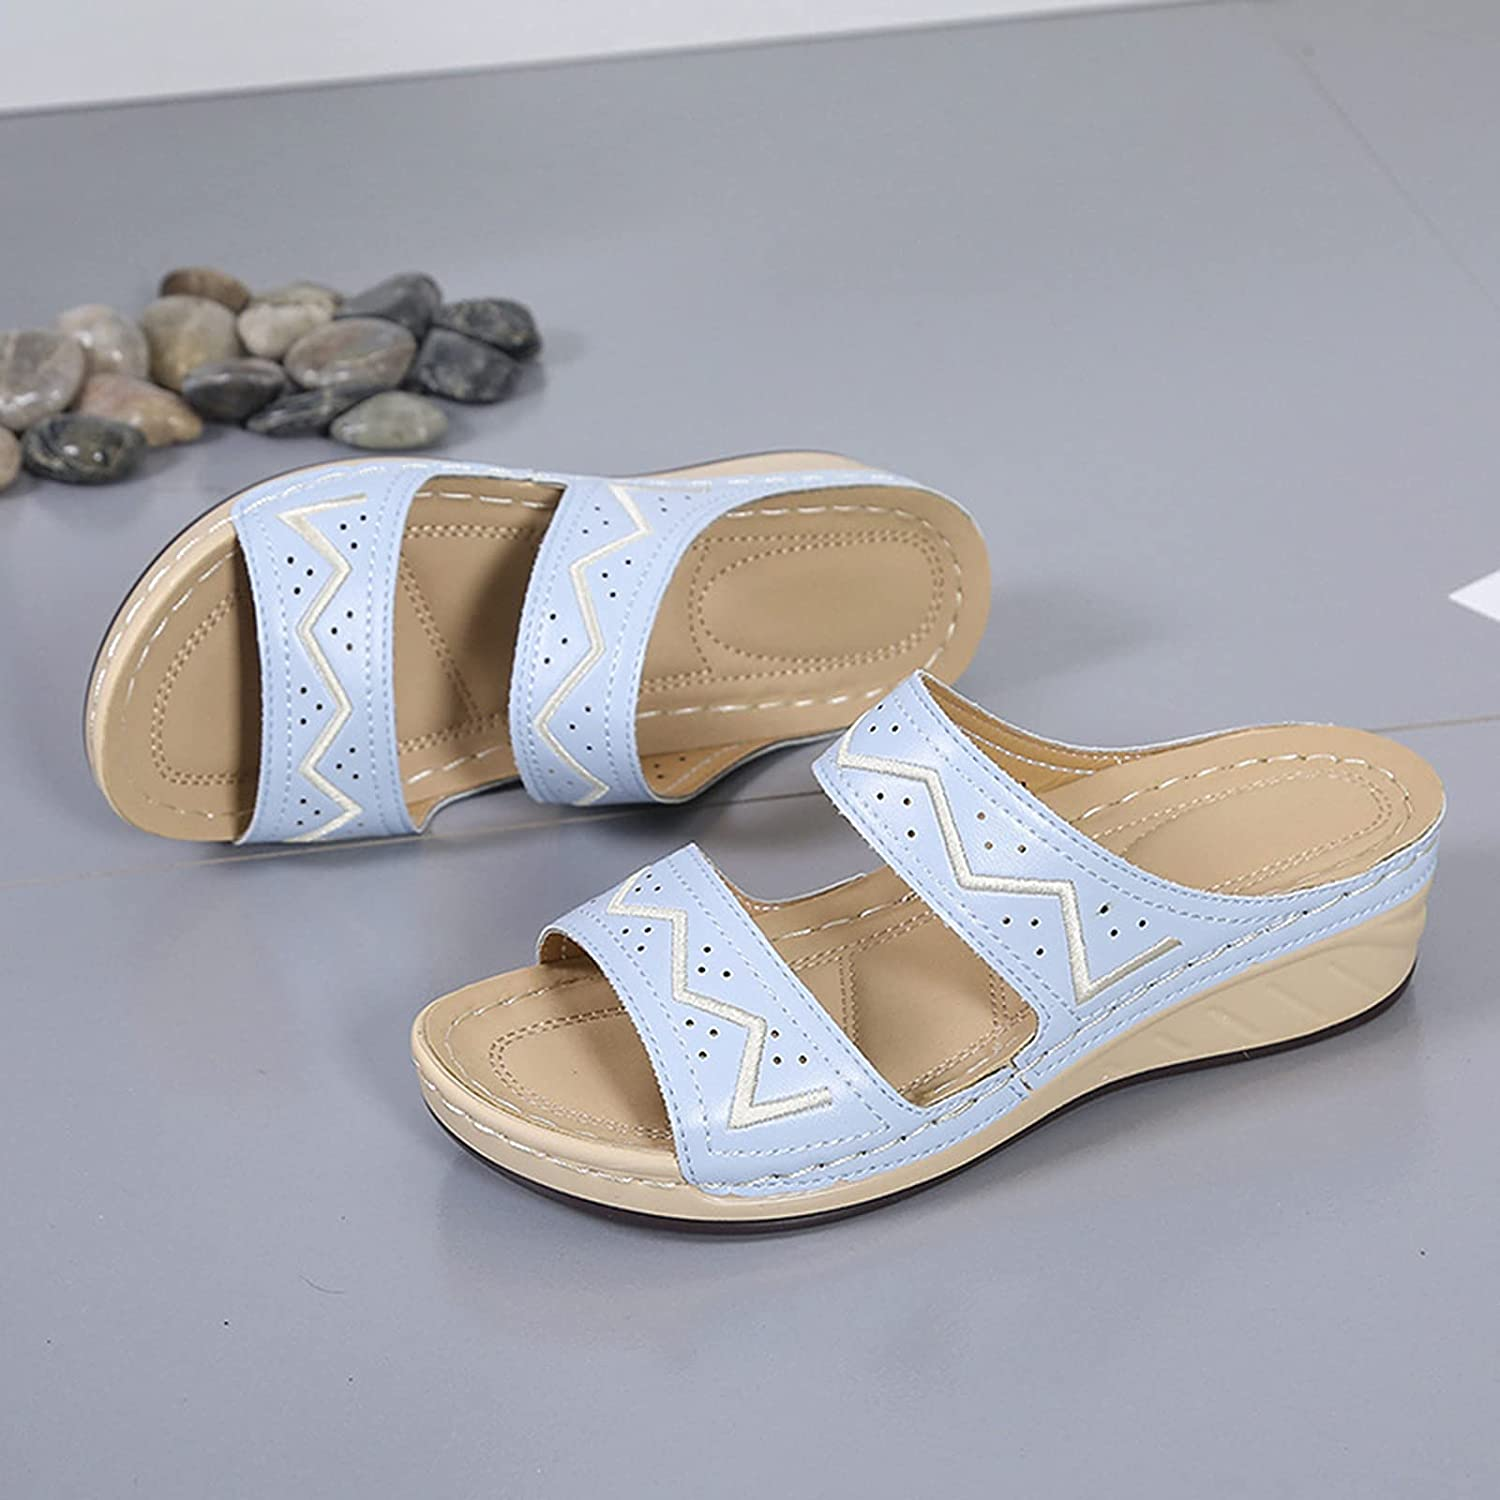 HHZY Women Selling 2021 spring and summer new Mule Clogs Shoes Sanda Summer Wedges Embroidered 2021